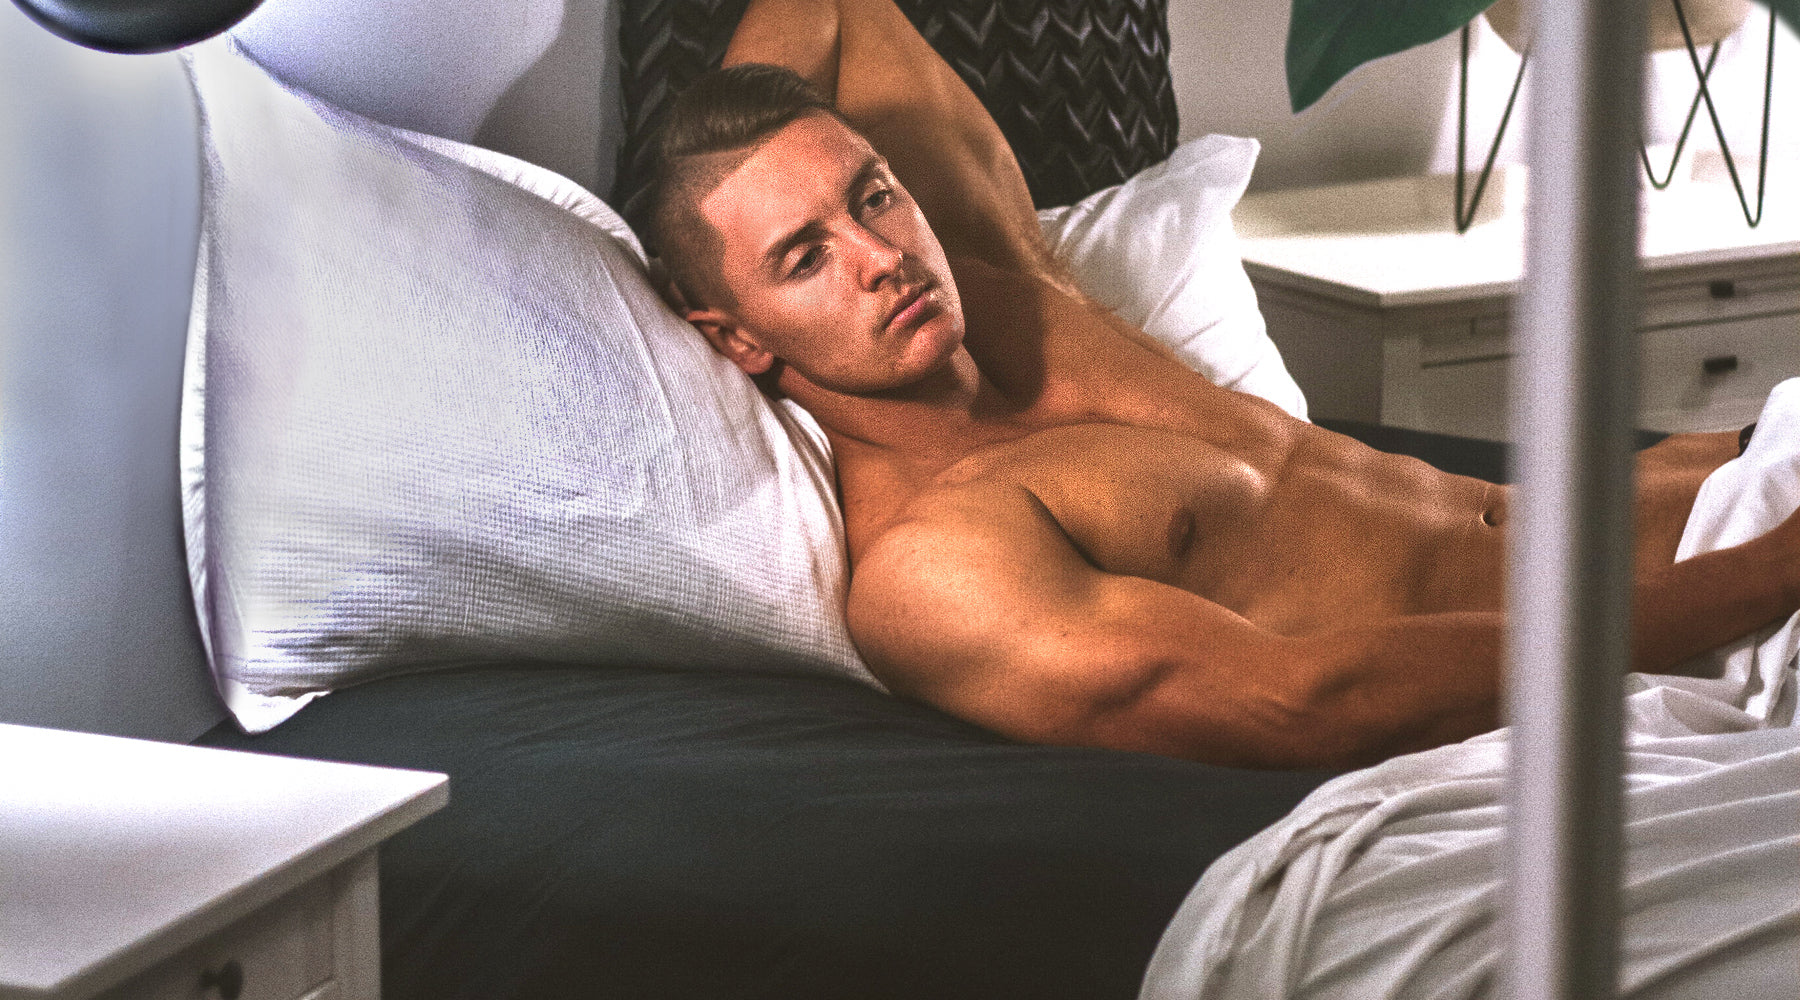 fit man in bed appearing pensive about climaxing early